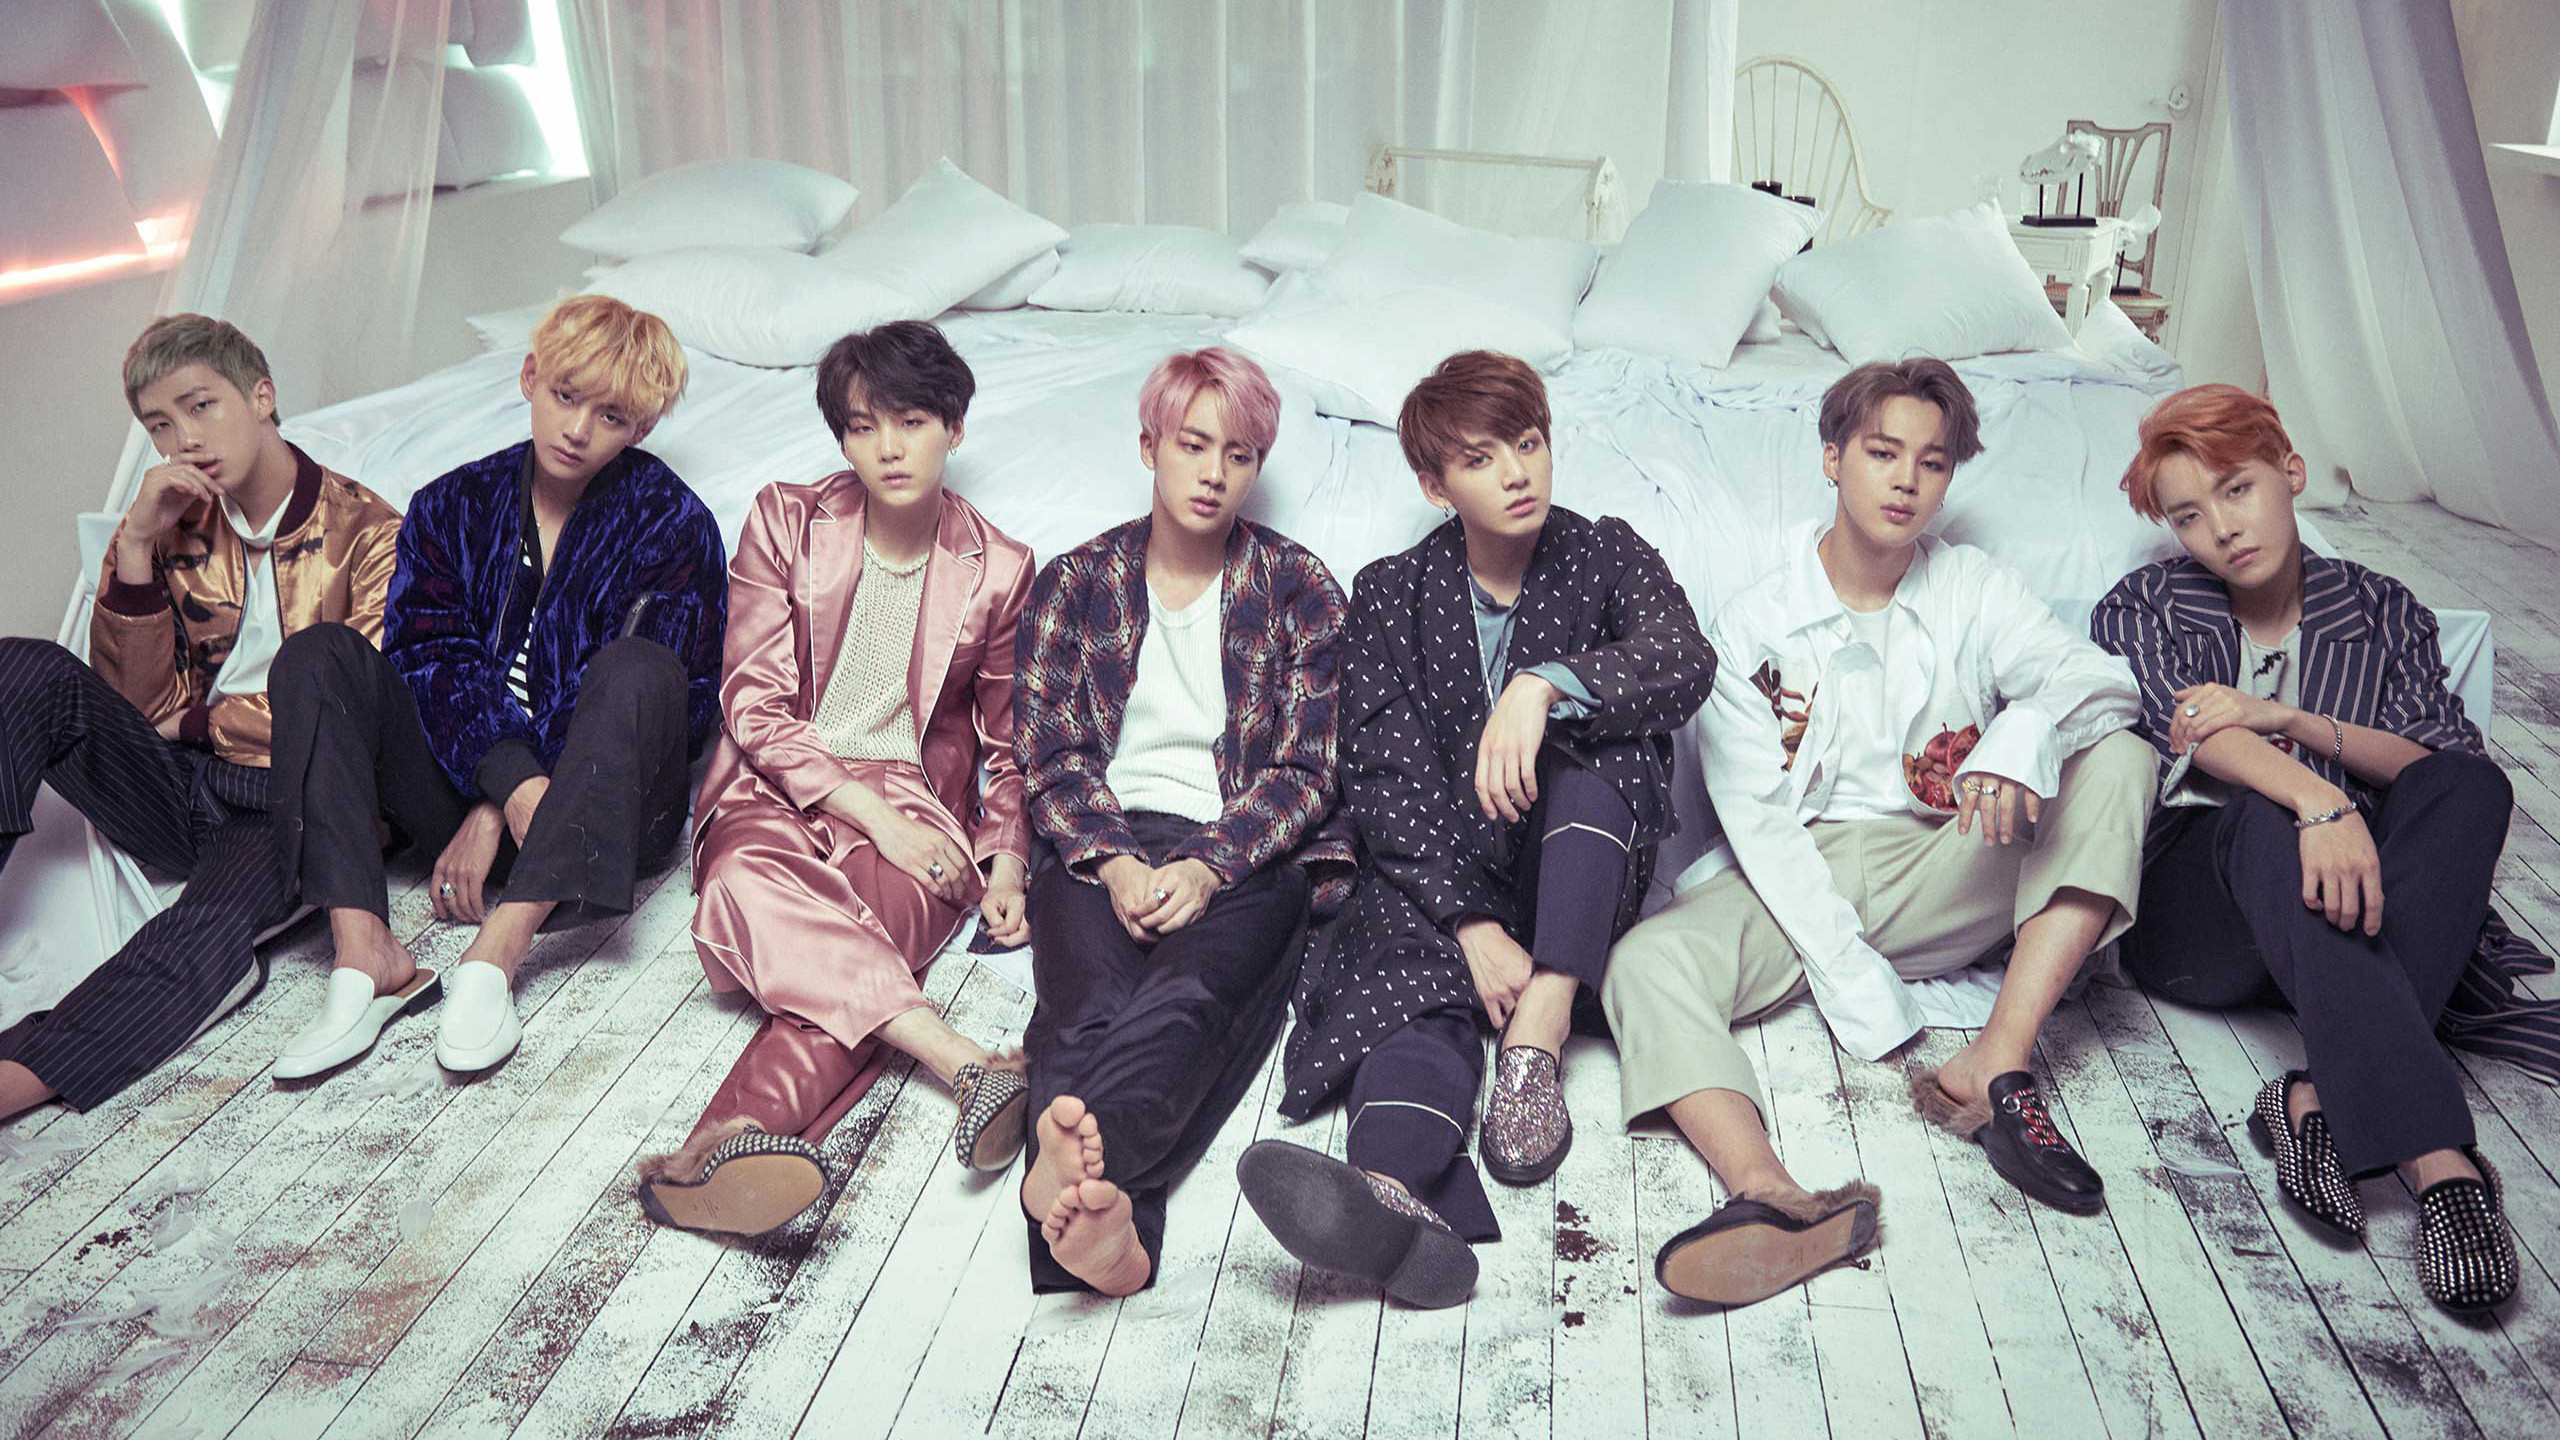 BTS Wallpaper HD 67 images 2560x1440